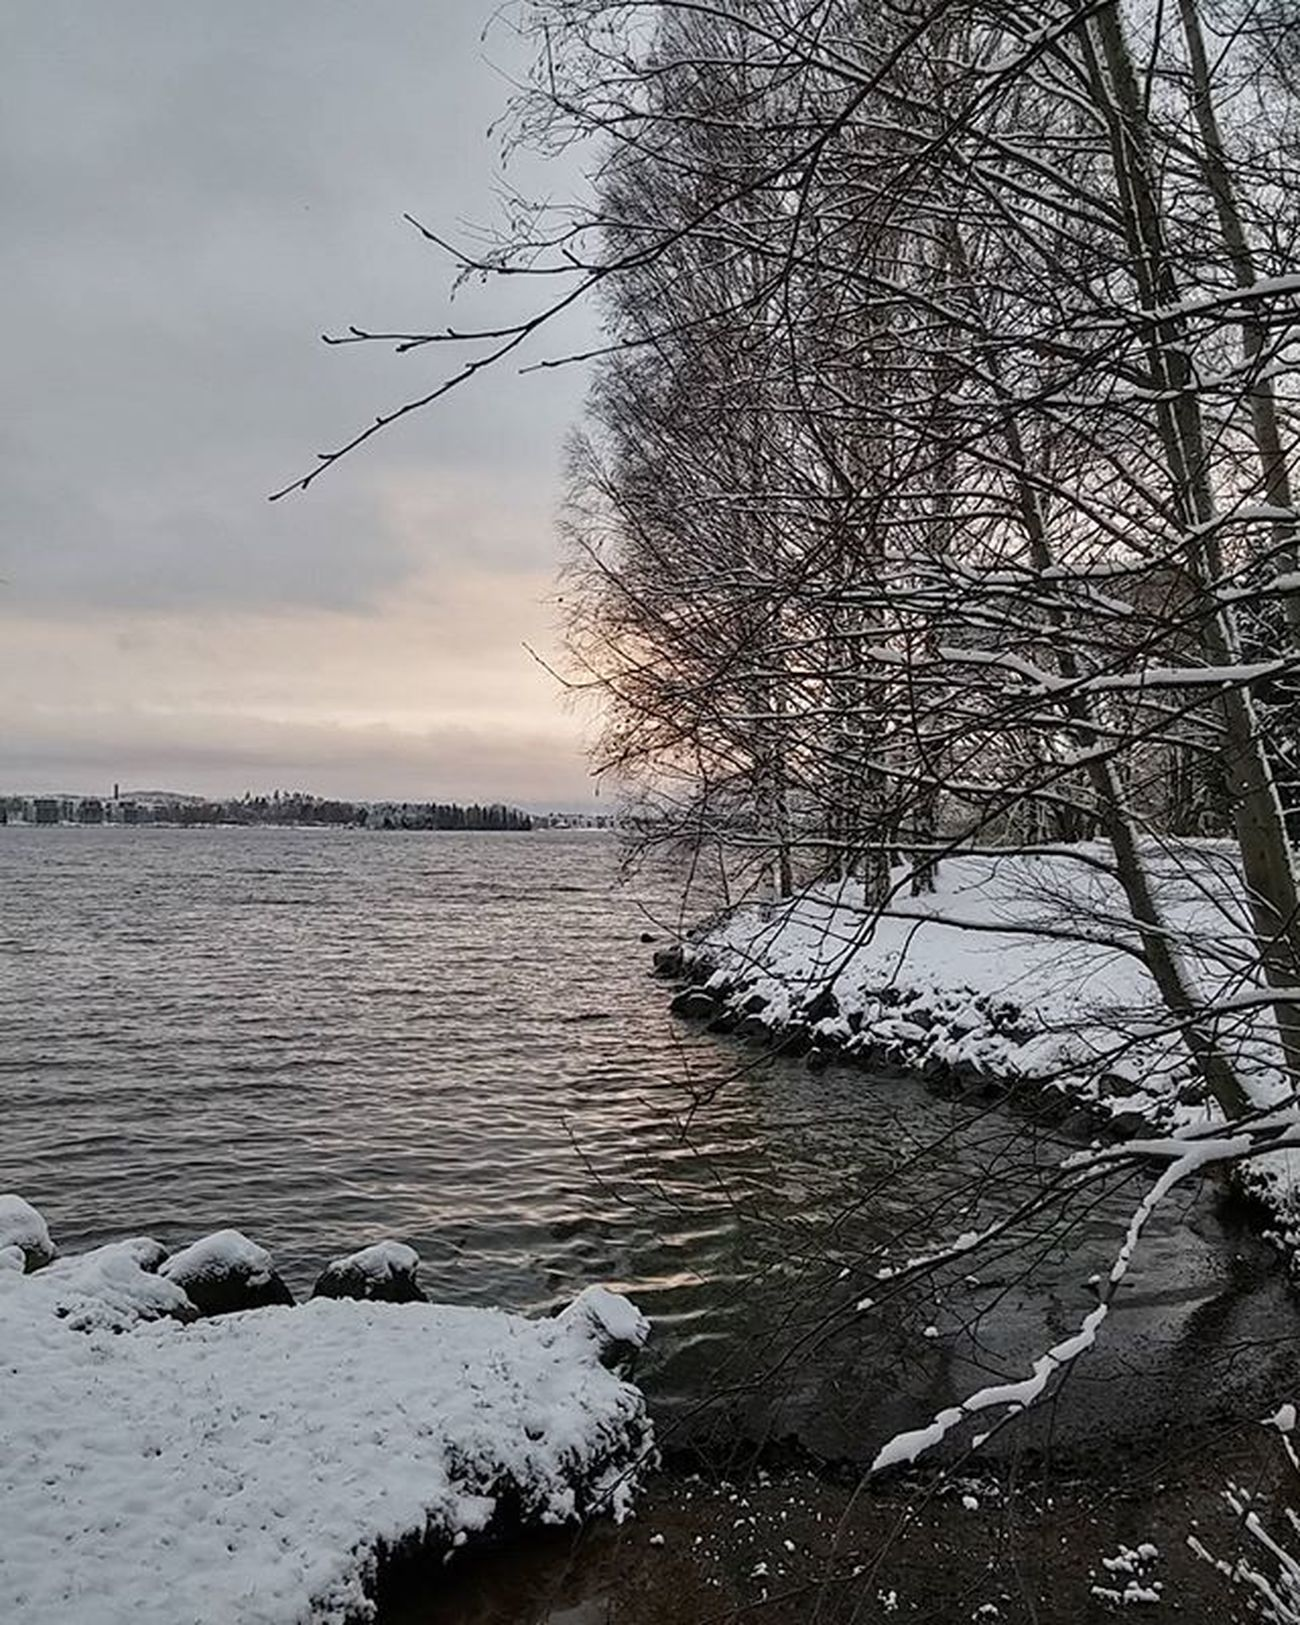 Hatanpäänpuisto Pyhäjärvi Järvi Lake Lago Lac Lumi Snow Nieve Neige Tampere Tamperelove Tre Muntampere Tampereallbright Ig_tampere Ig_finland Finland Suomi Finnishmoments Loves_finland Fotofanatics_nature_ Thisisfinland Visitfinland Discoverfinland fotocatchers ic_landscapes natur_photograph seasonsinfinland finland_photolovers